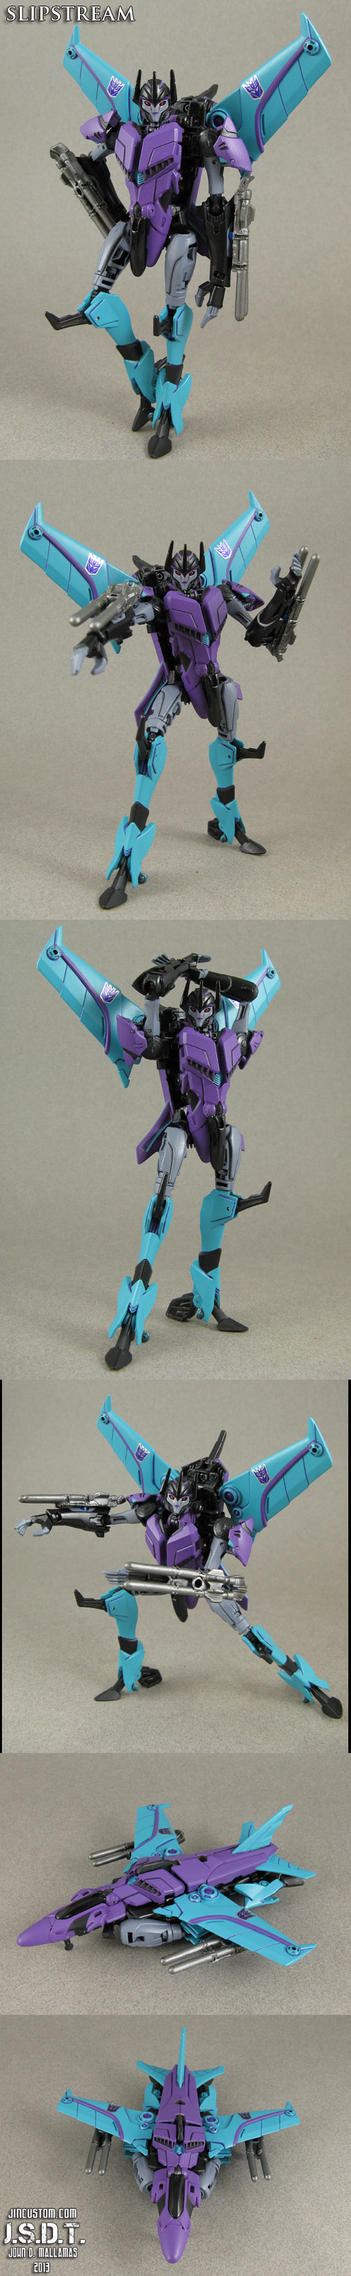 Custom Transformers Prime Slipstream Figure by Jin-Saotome